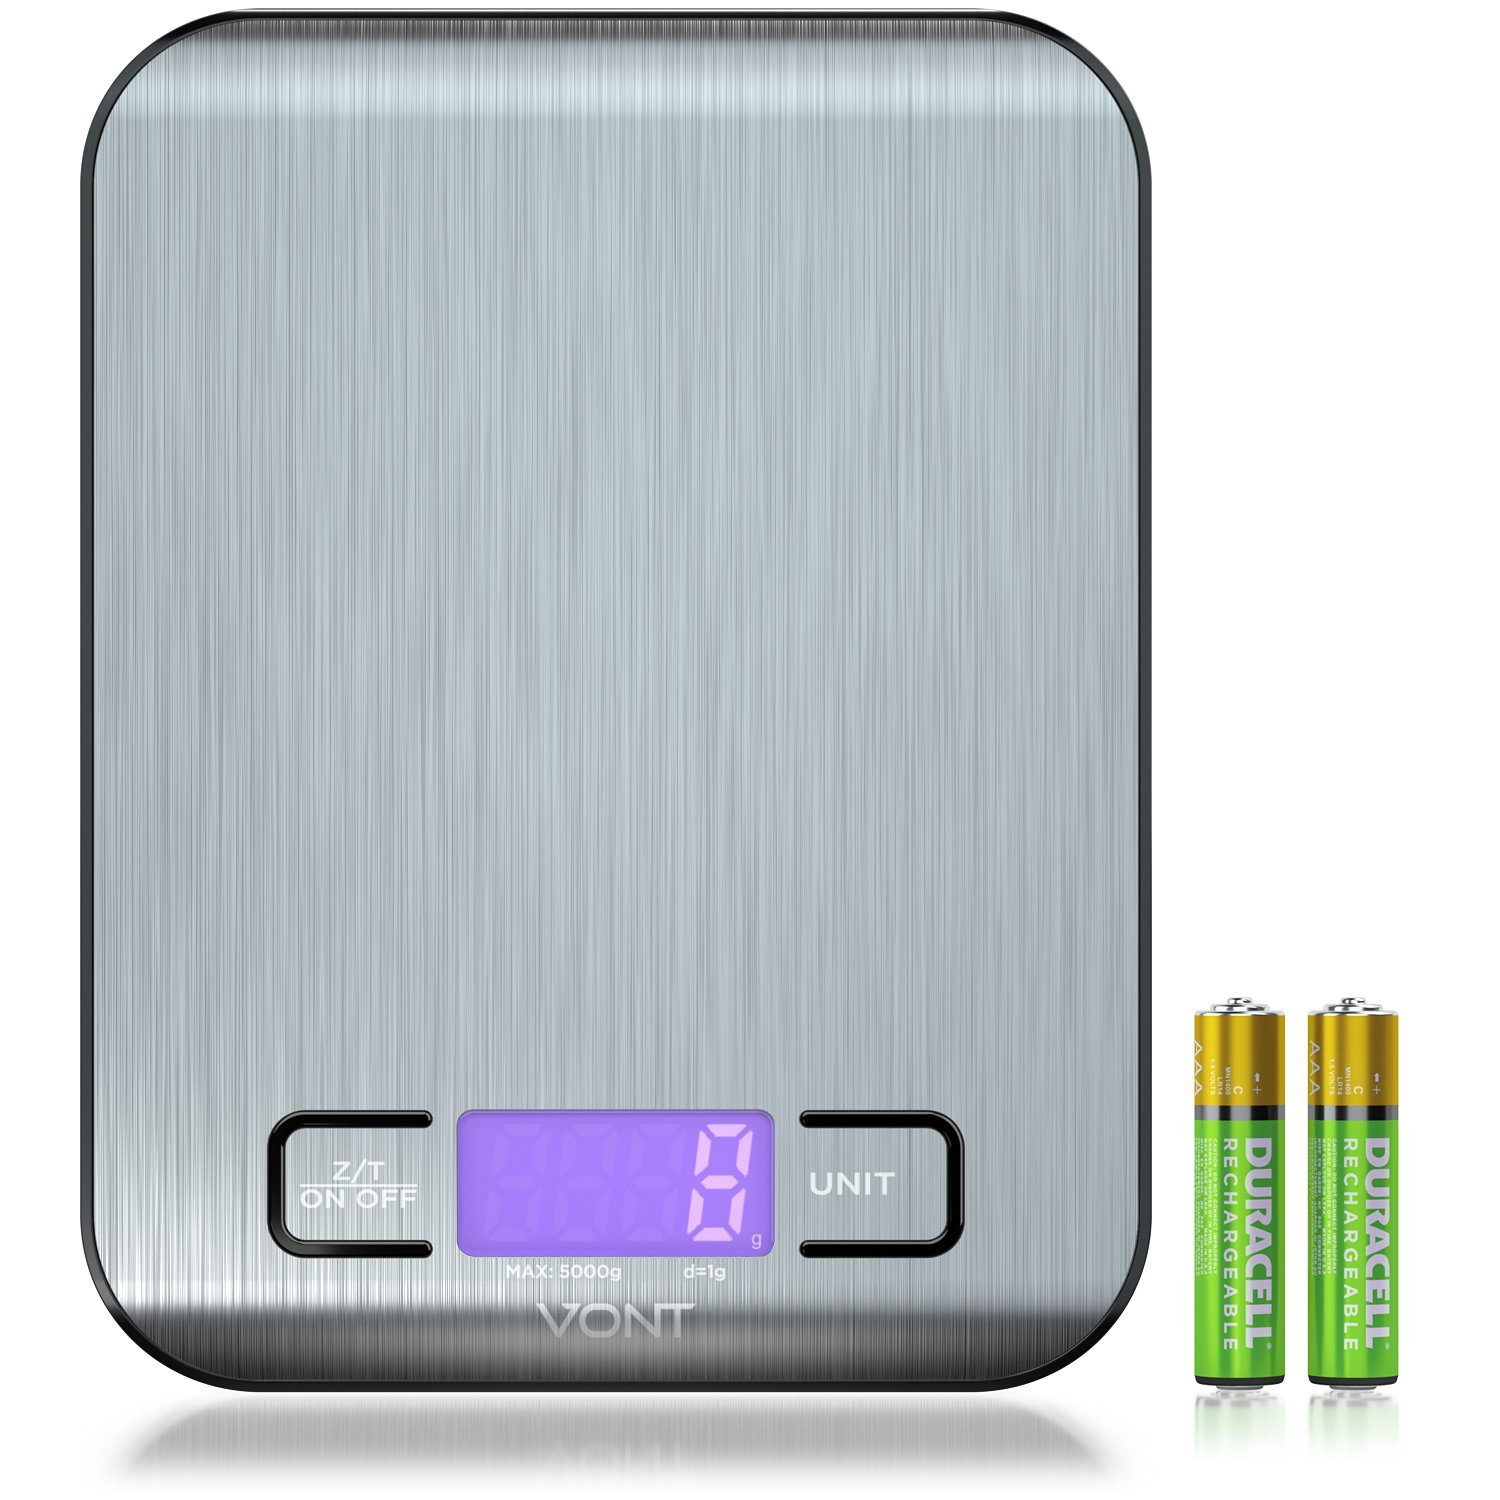 Digital Kitchen Scale, Food Scale, Gorgeous Slim Compact Design, Multifunctional, Easy to Clean Stainless Steel, Batteries Included